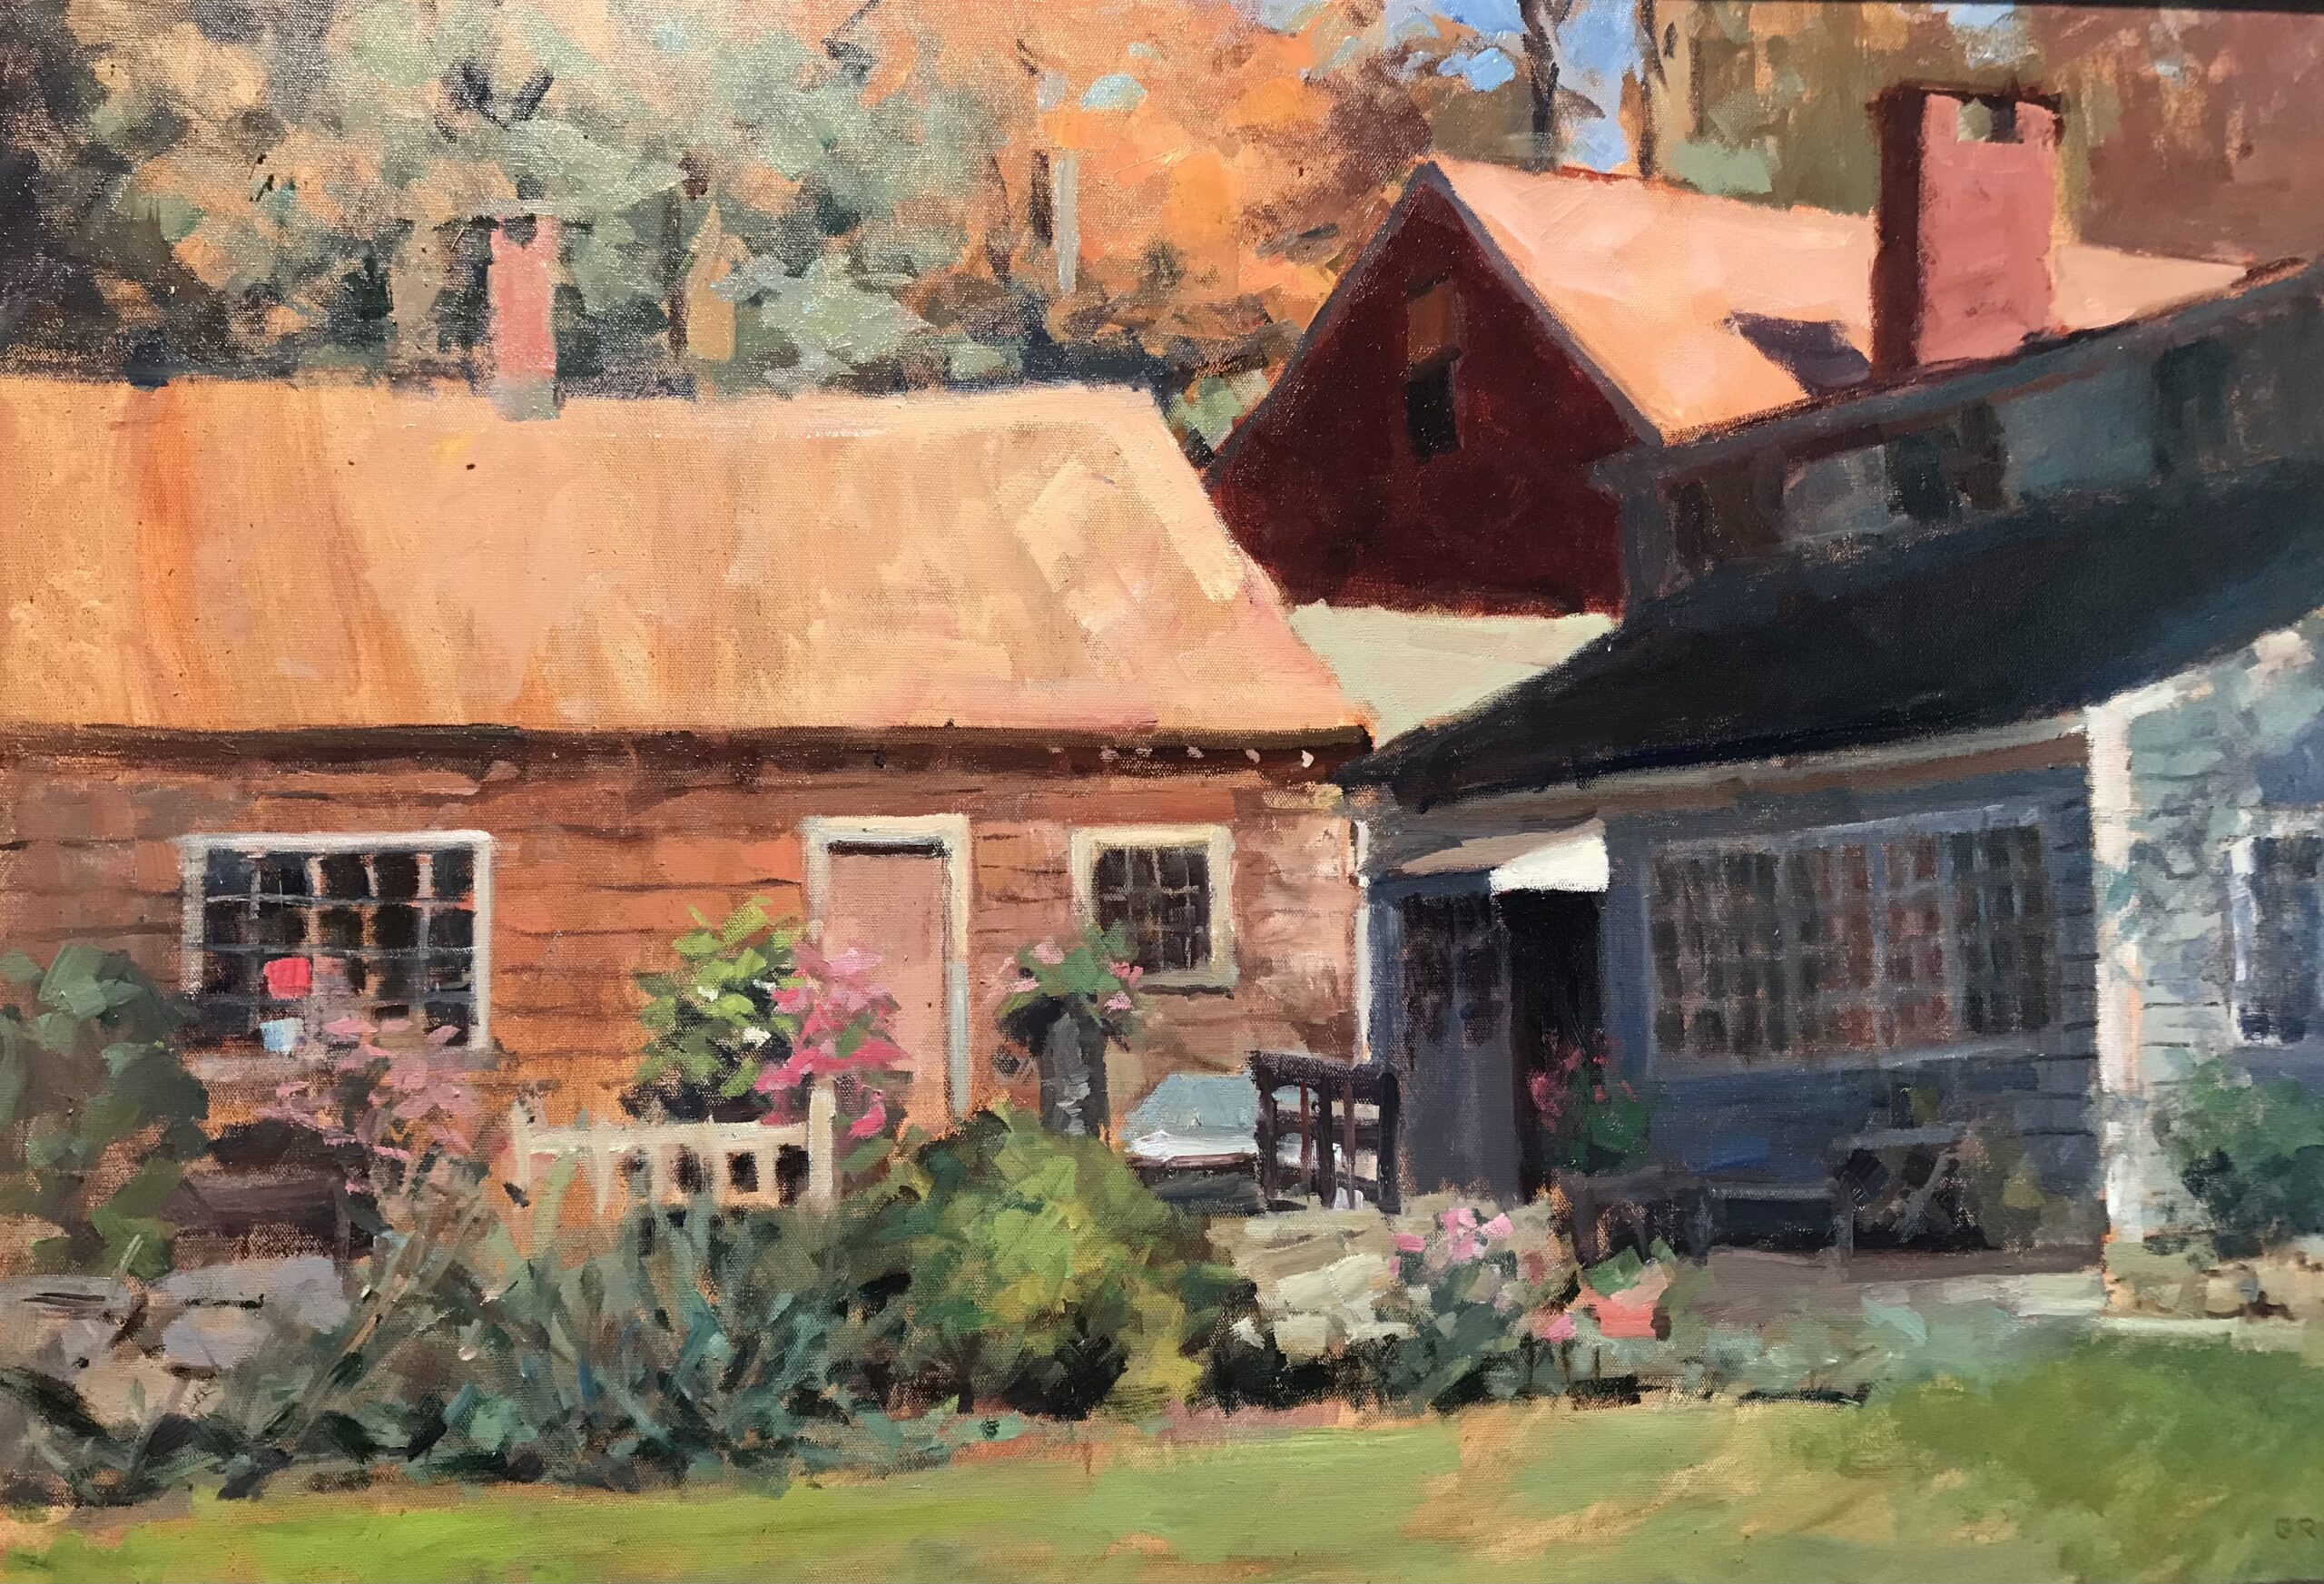 Ed's Back Yard, Oil on Canvas, 24 x 36 Inches, by Susan Grisell, $1500